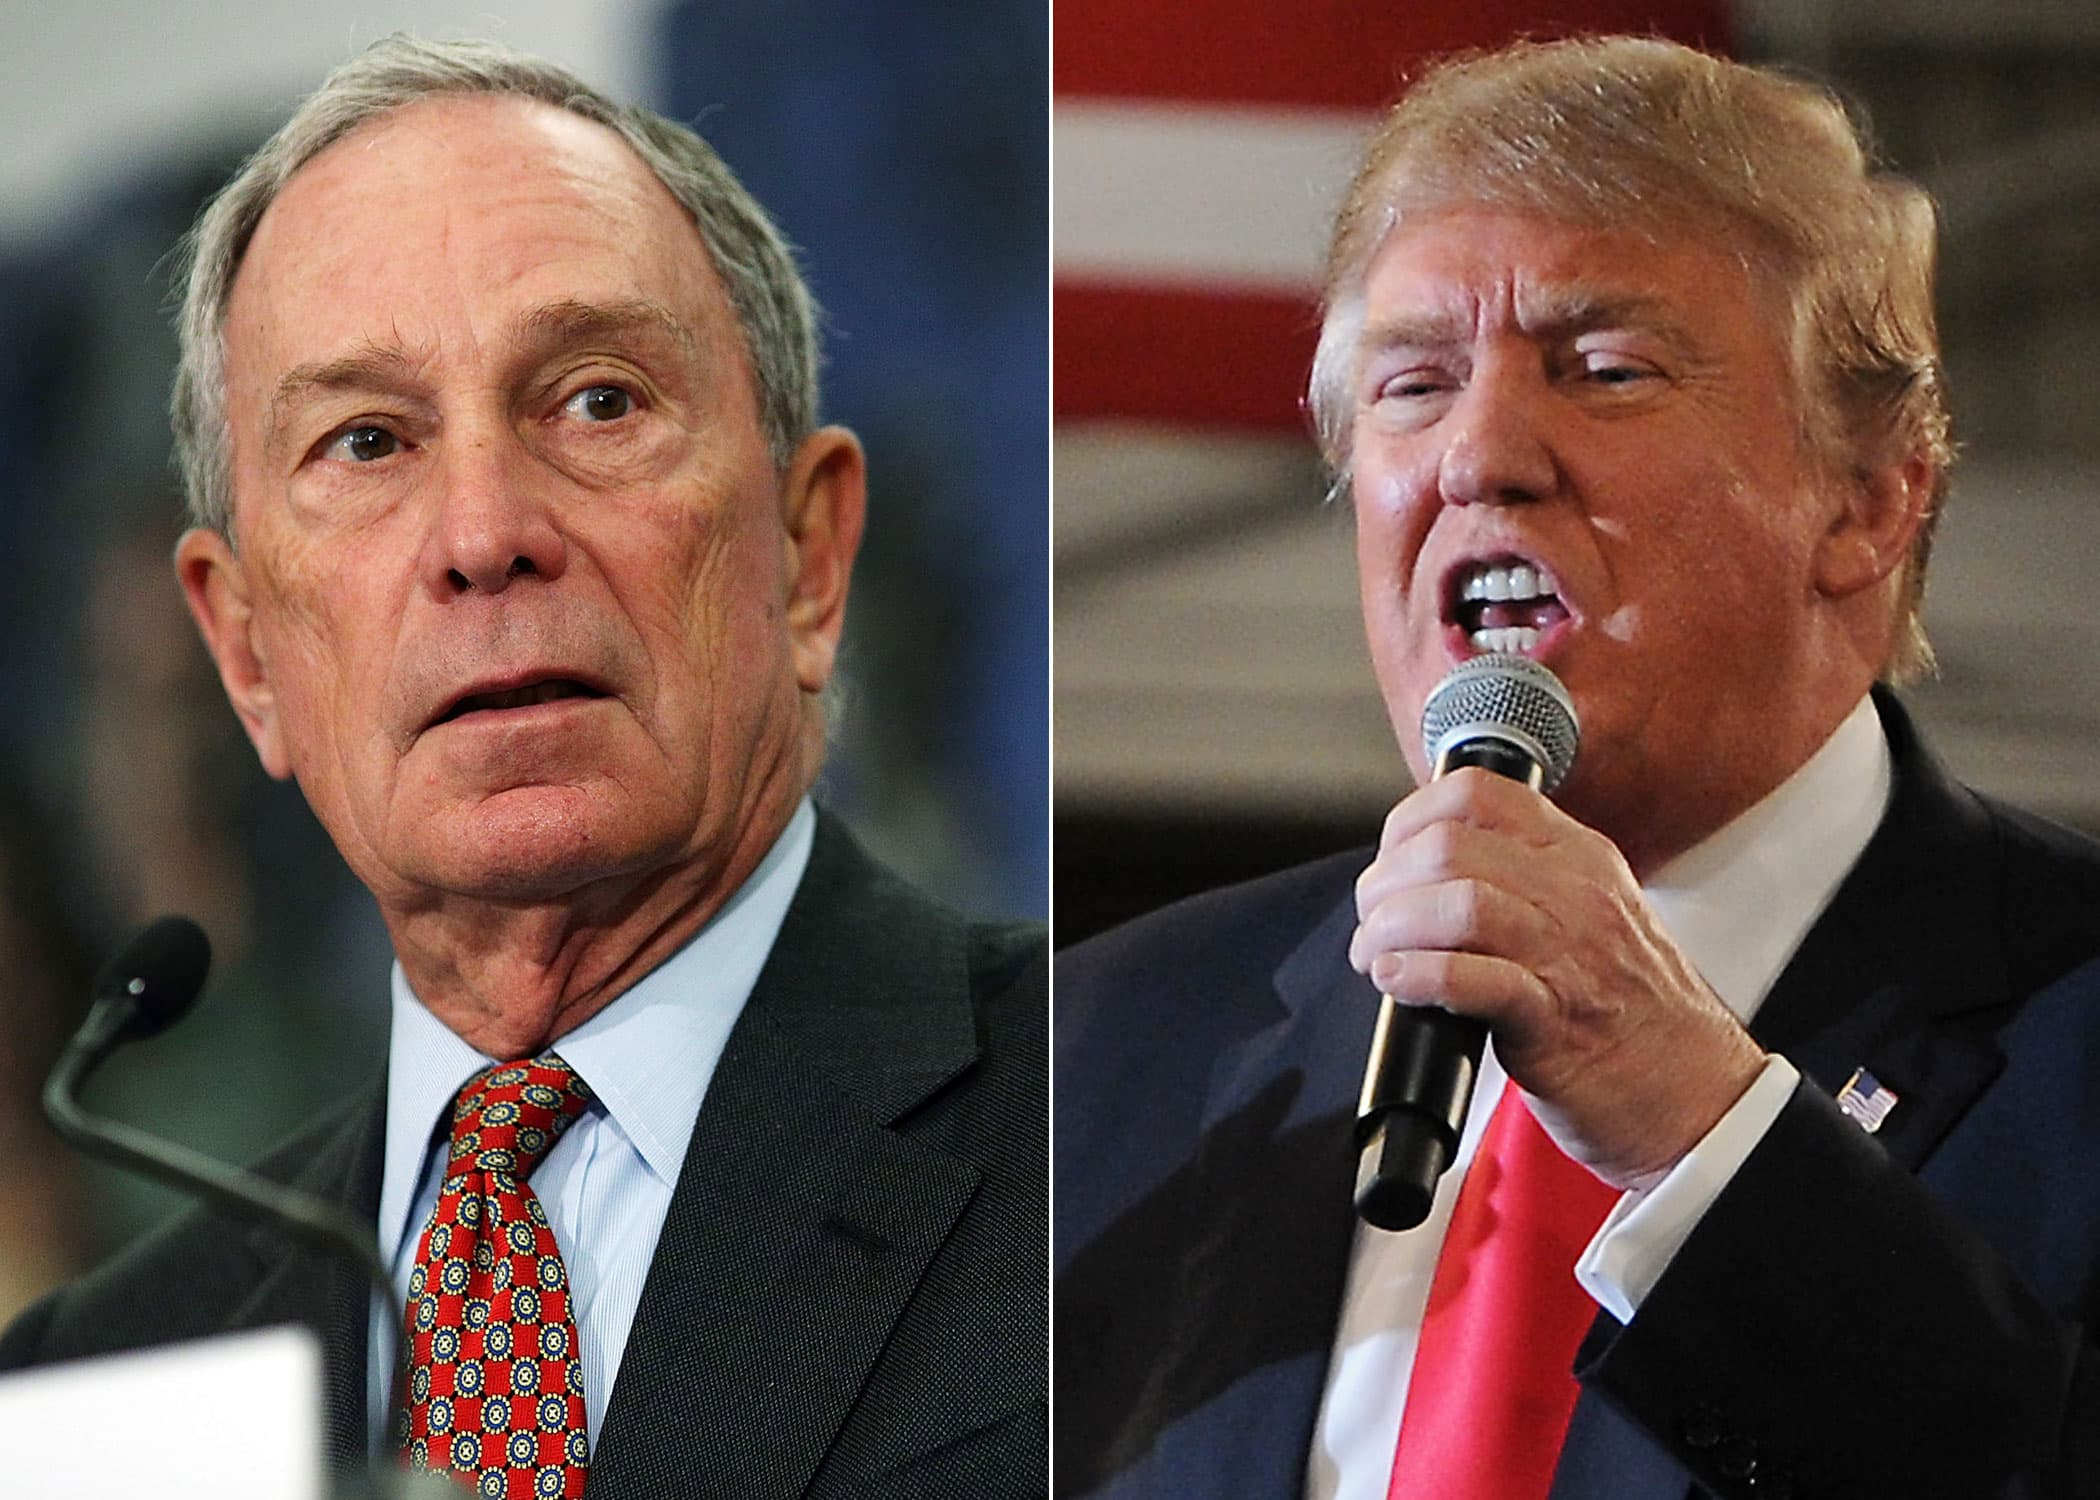 Trump and Bloomberg escalate their personal war on the campaign trail